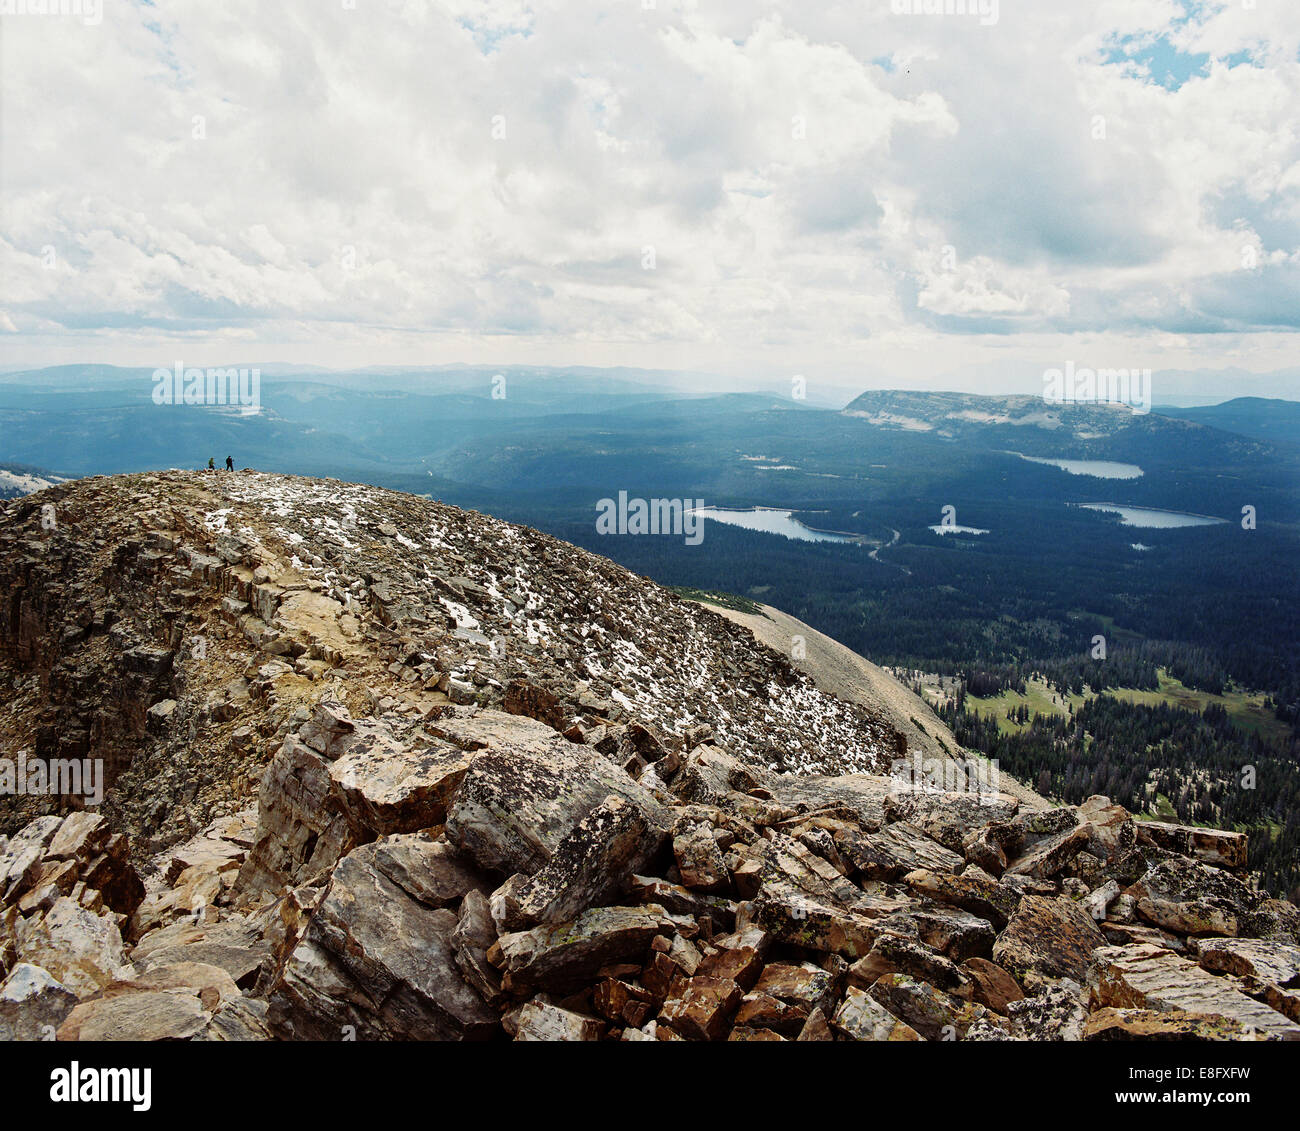 USA, Utah, View from top of Bald Mountain - Stock Image